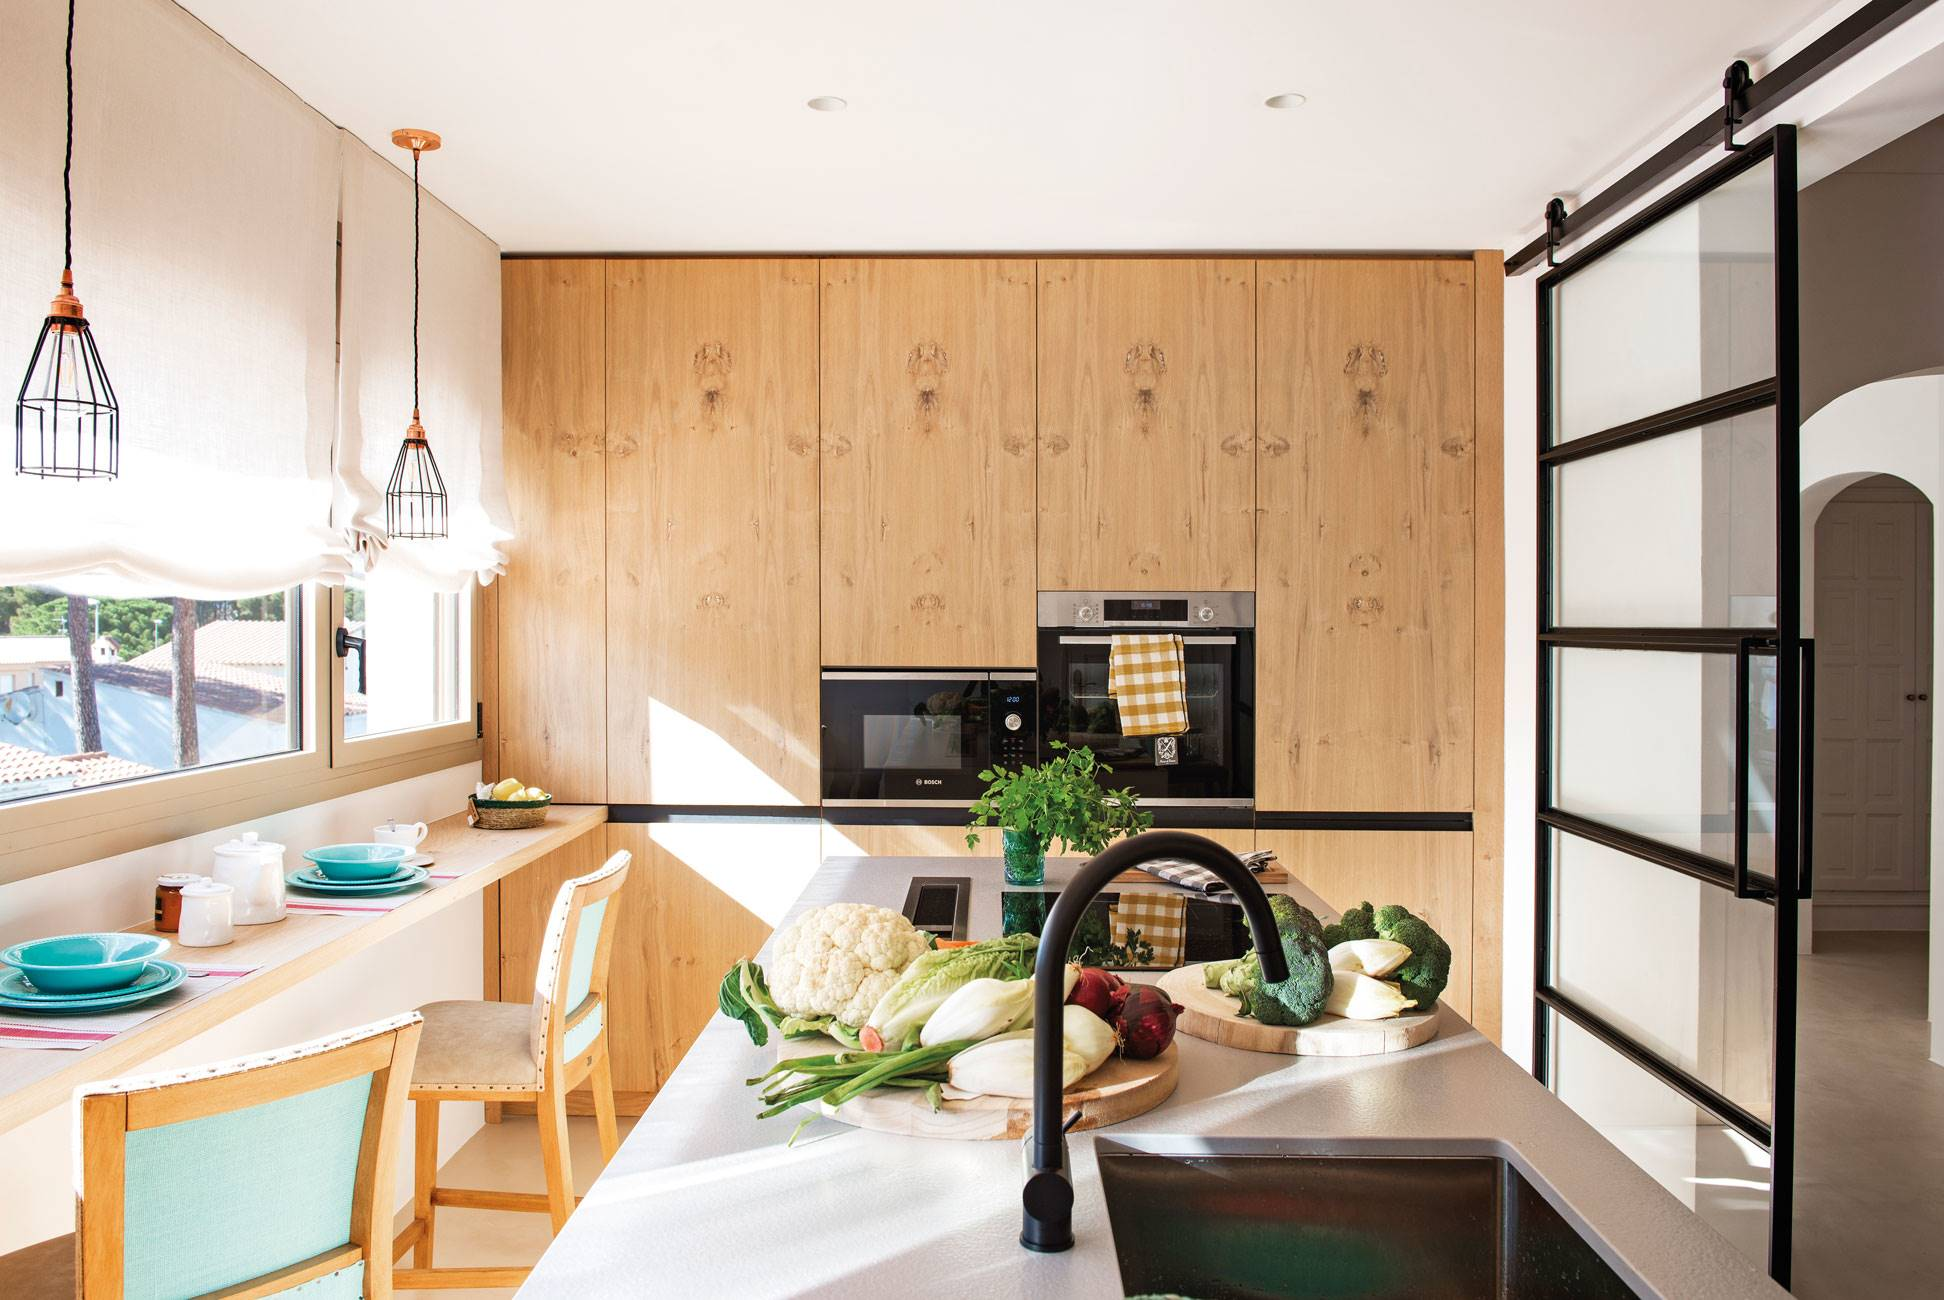 white-and-wood-kitchen-with-wall-shelf-as-table-bar 503927. An elongated kitchen